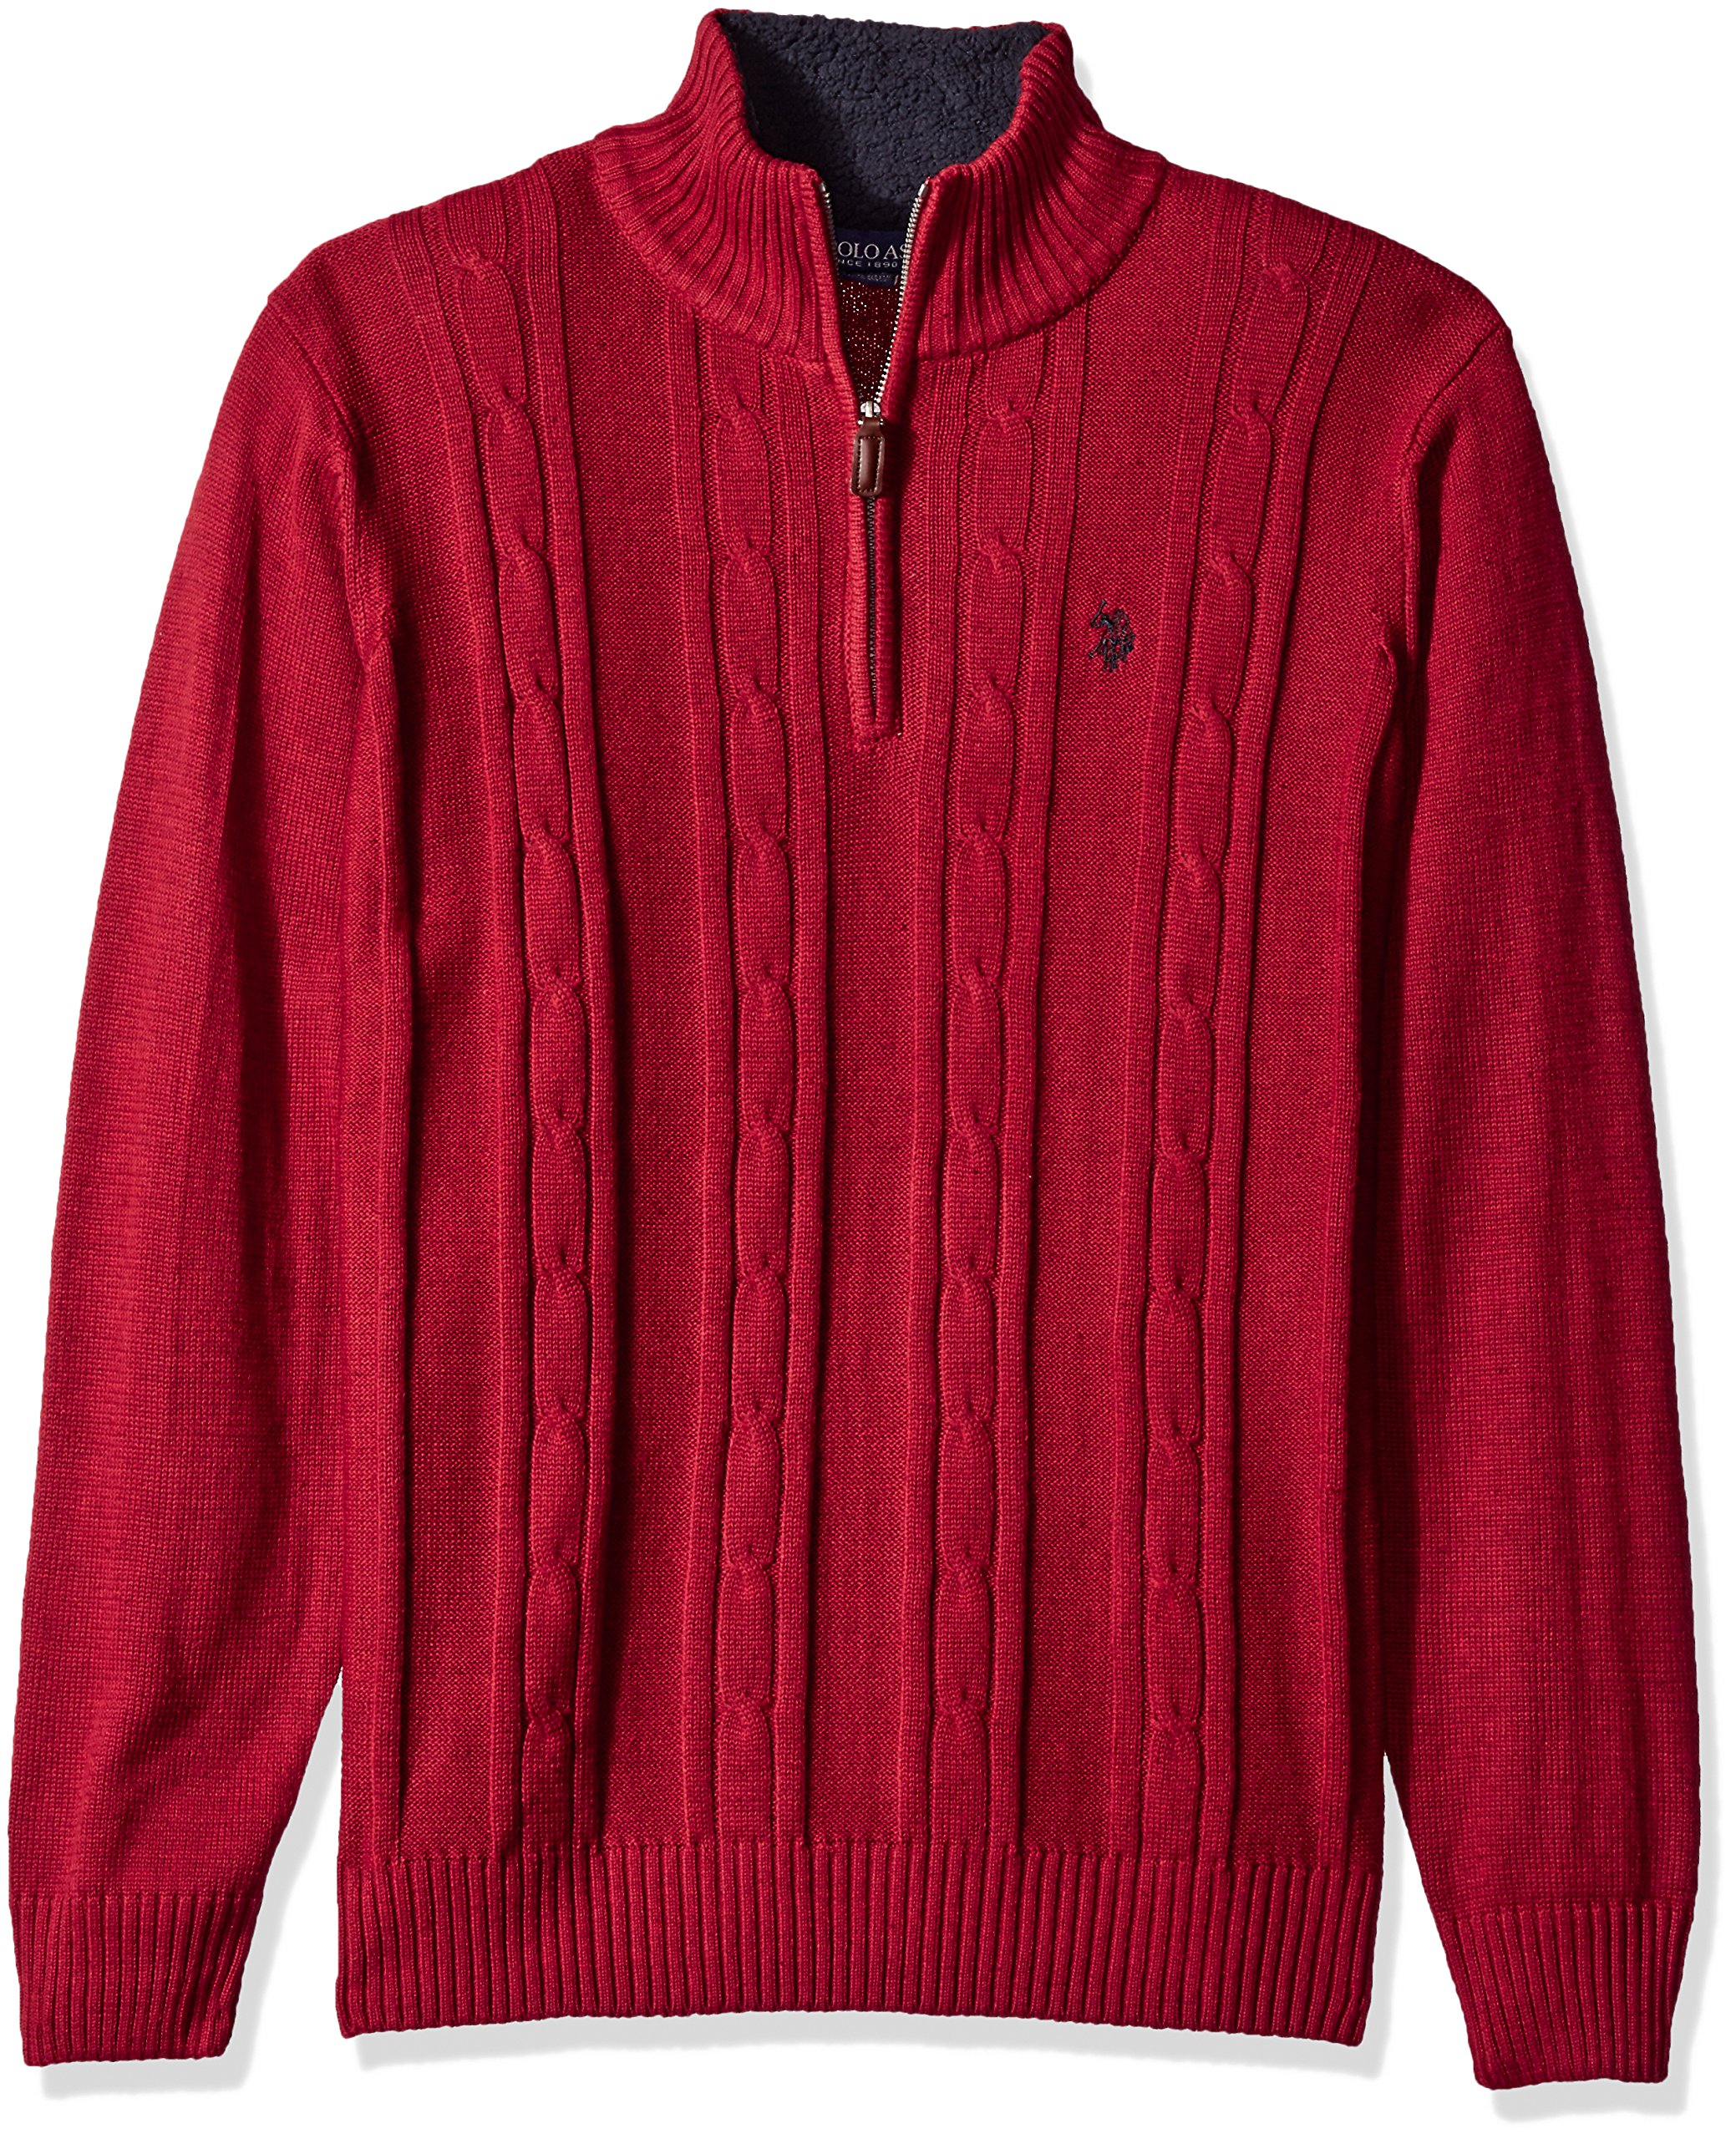 U.S. Polo Assn. Men's Solid Cable 1/4 Zip Sweater, Brick Heather, Small